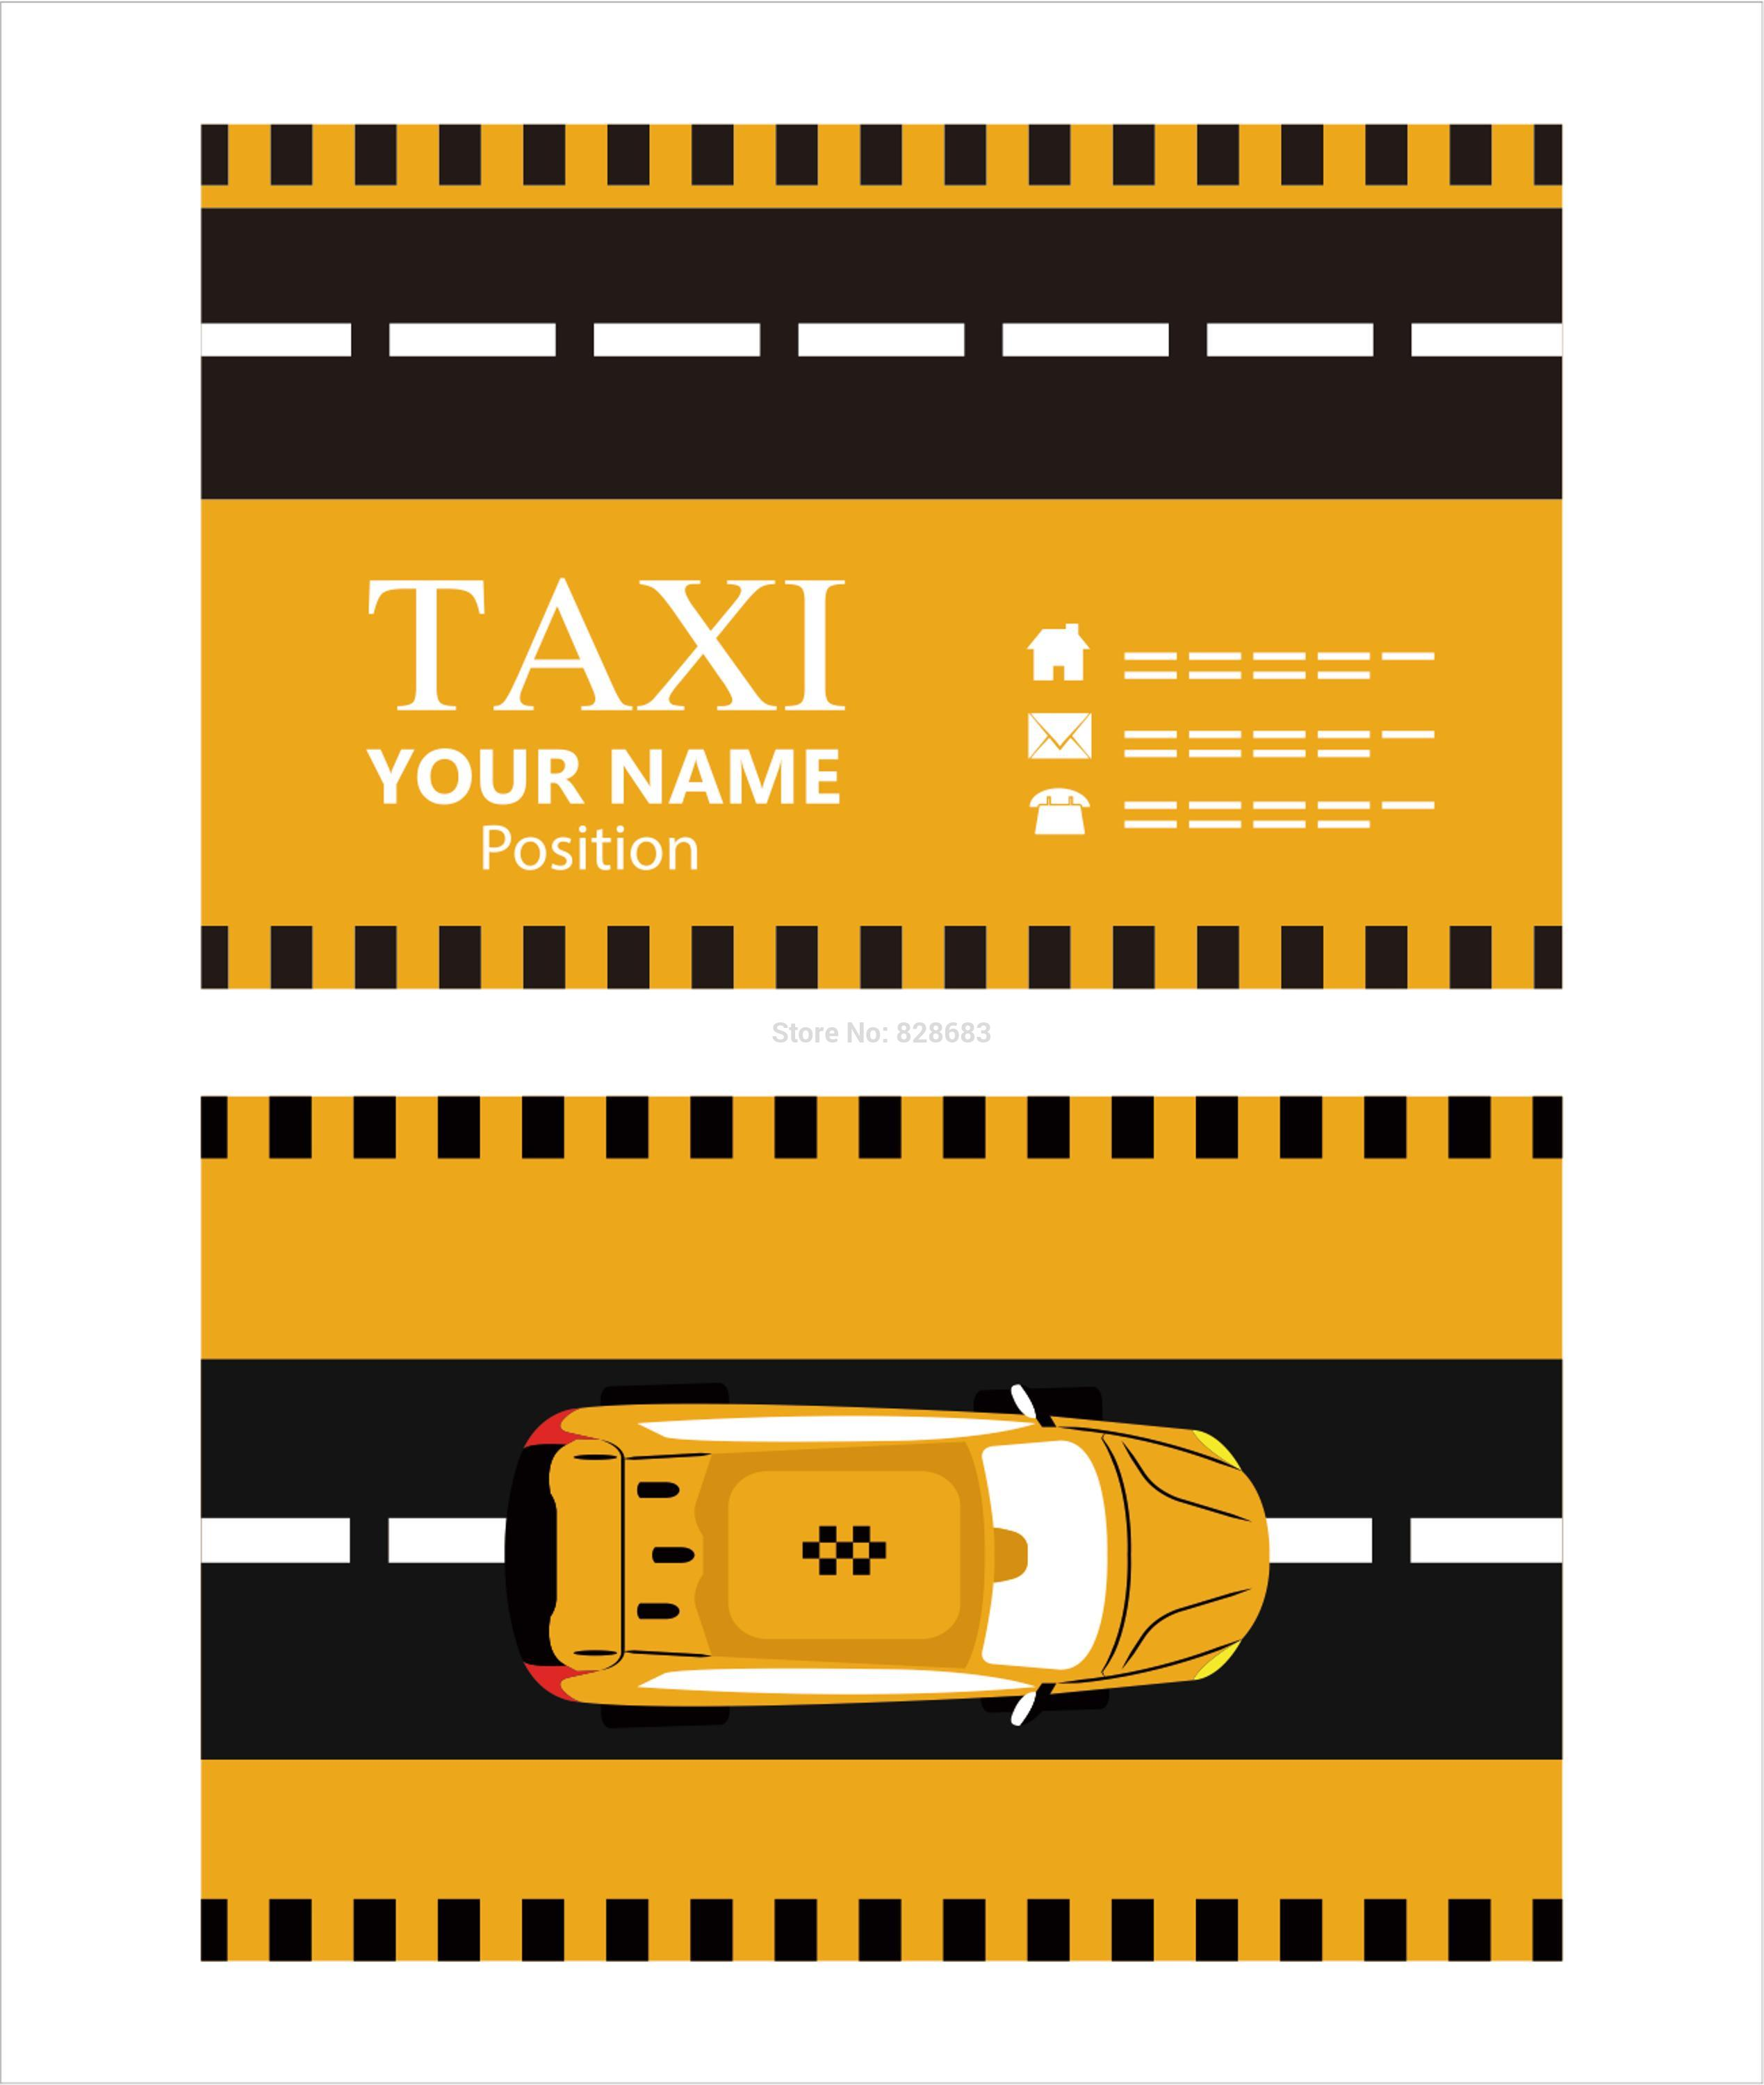 paper card template for taxi 300gsm with matte face yellow and black background